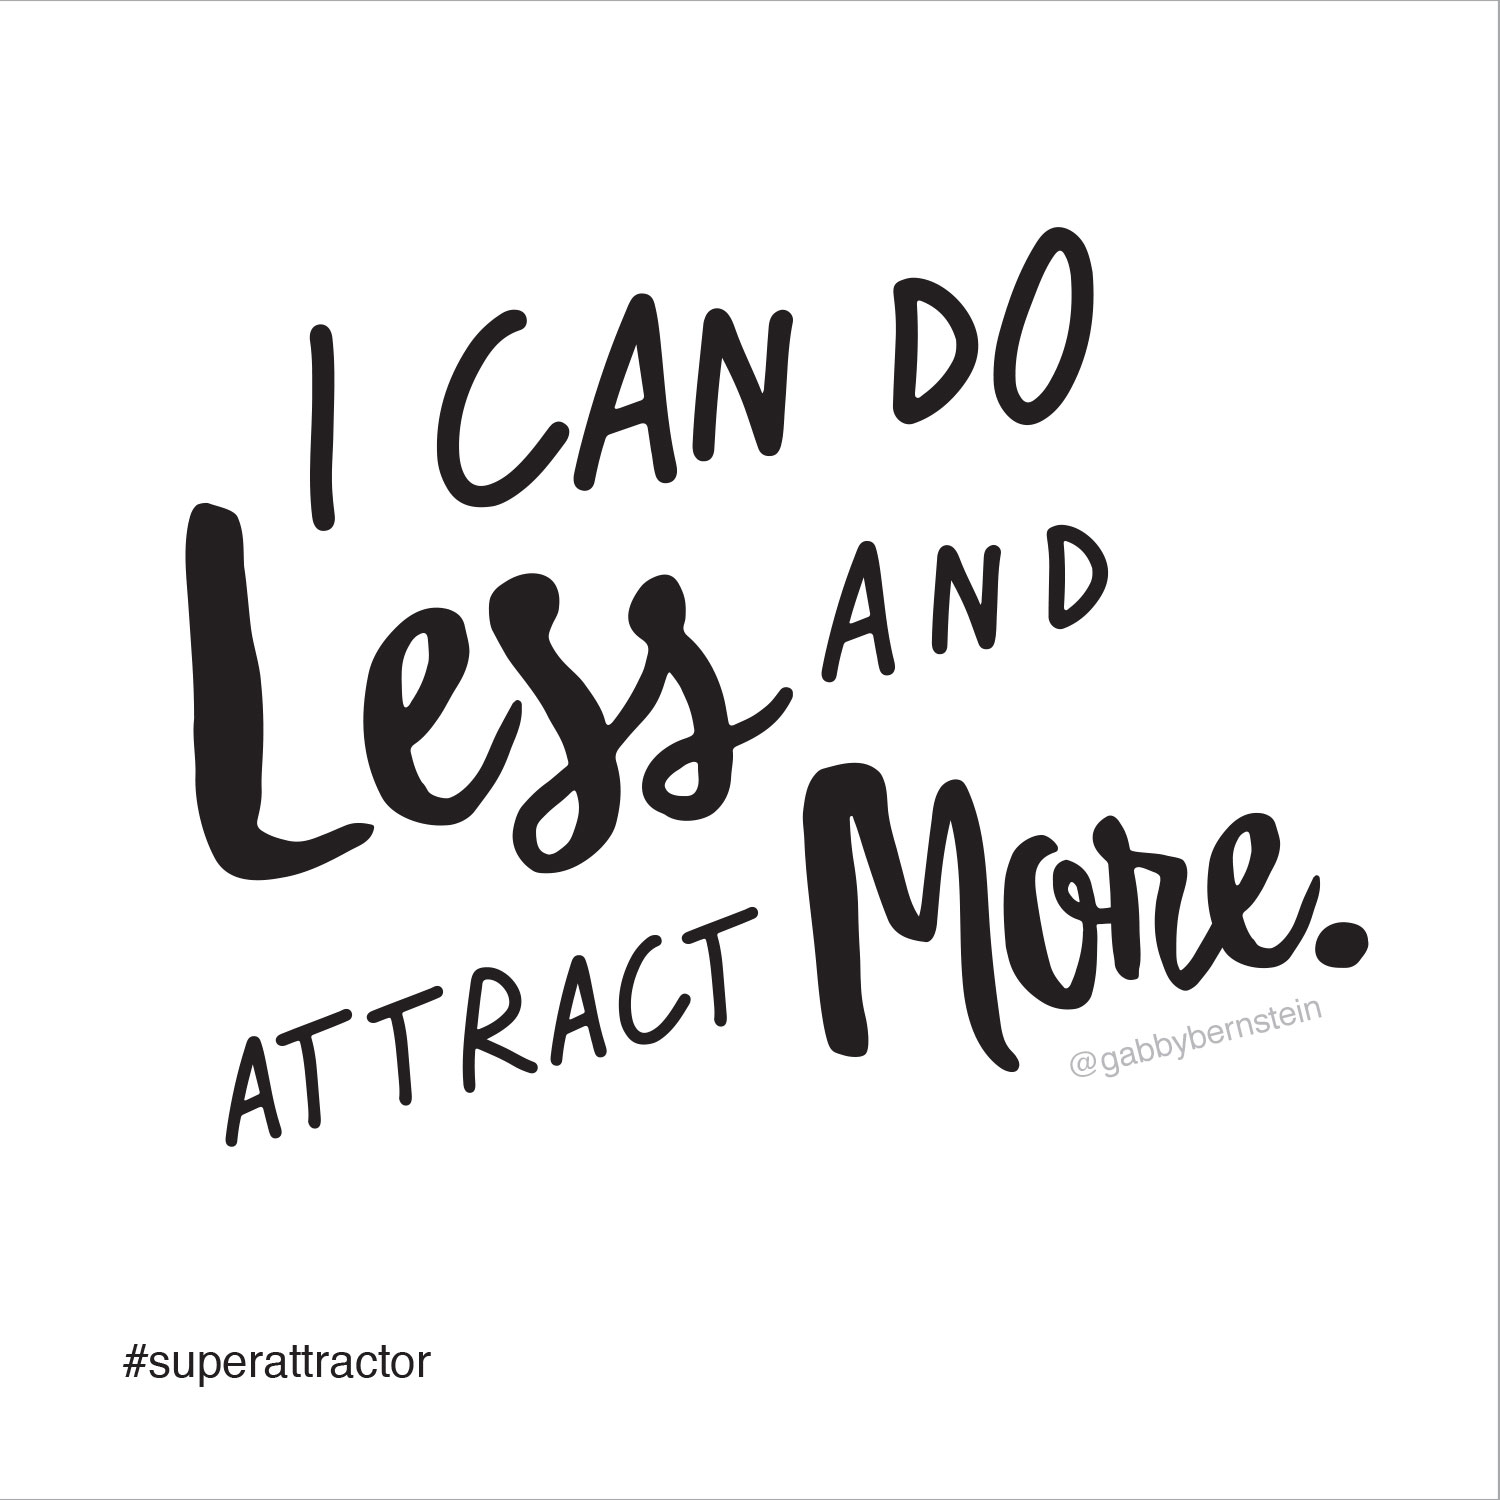 I can do less and attract more | Gabby Bernstein | Super Attractor